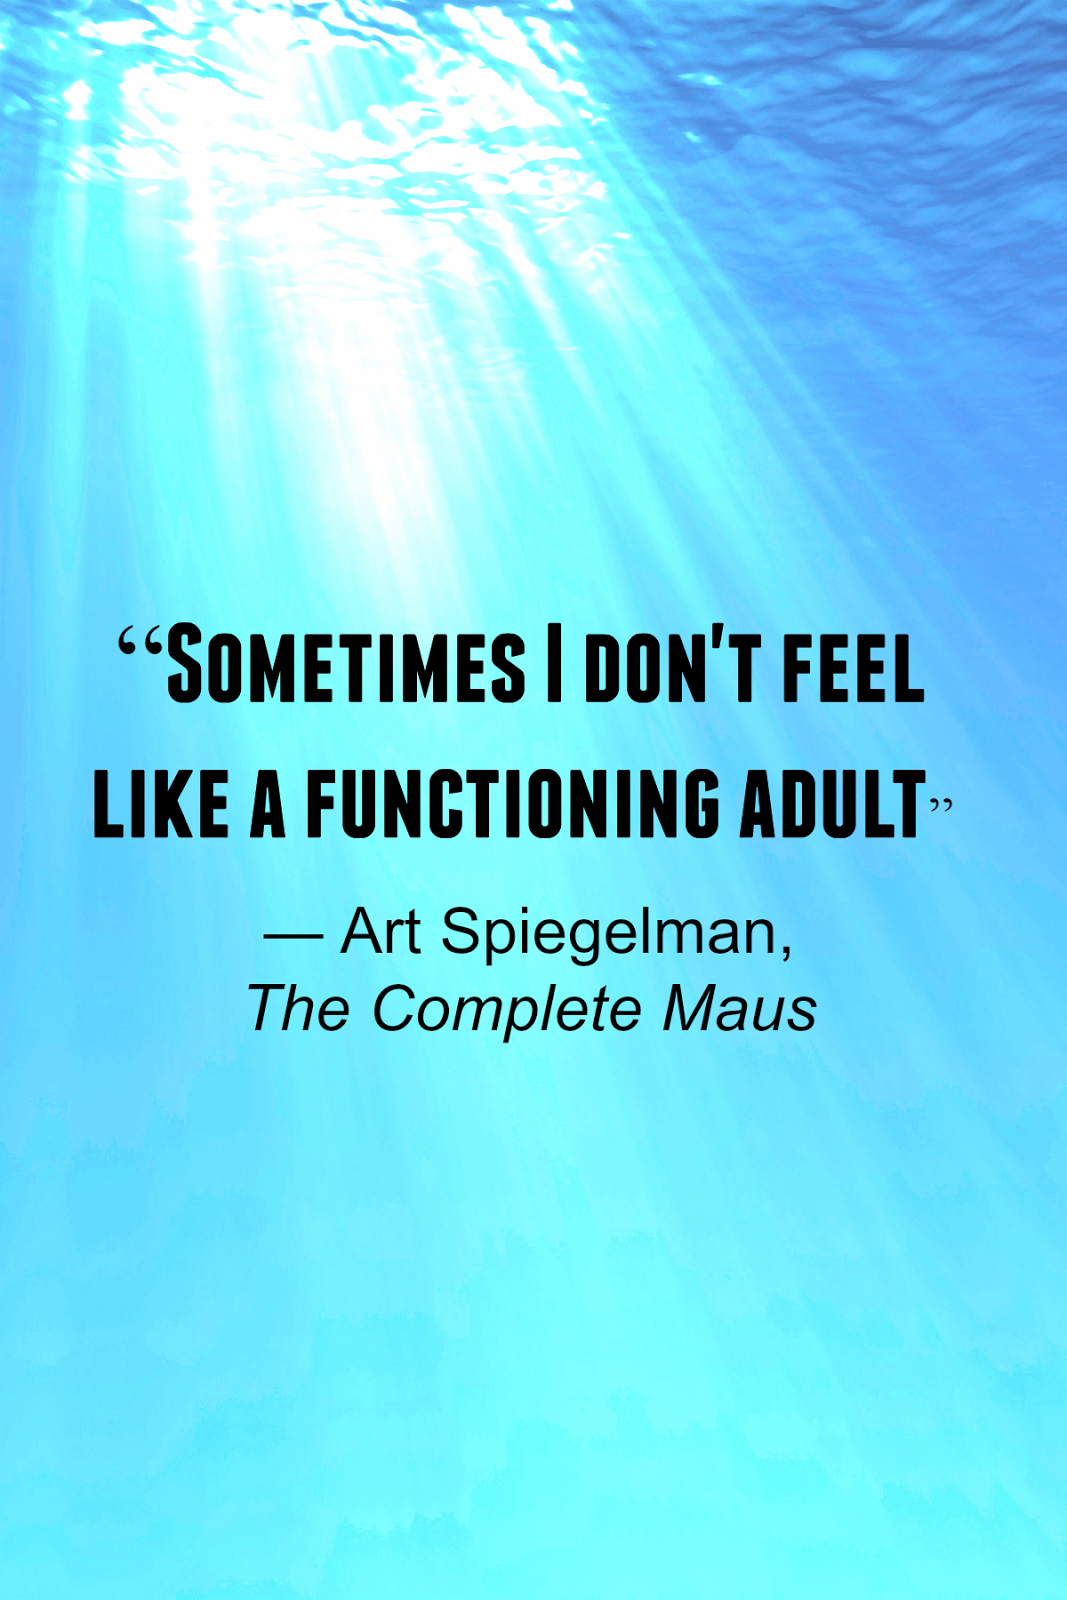 """Sometimes I don't feel like a functioning adult"" - Art Spiegelman Quote"